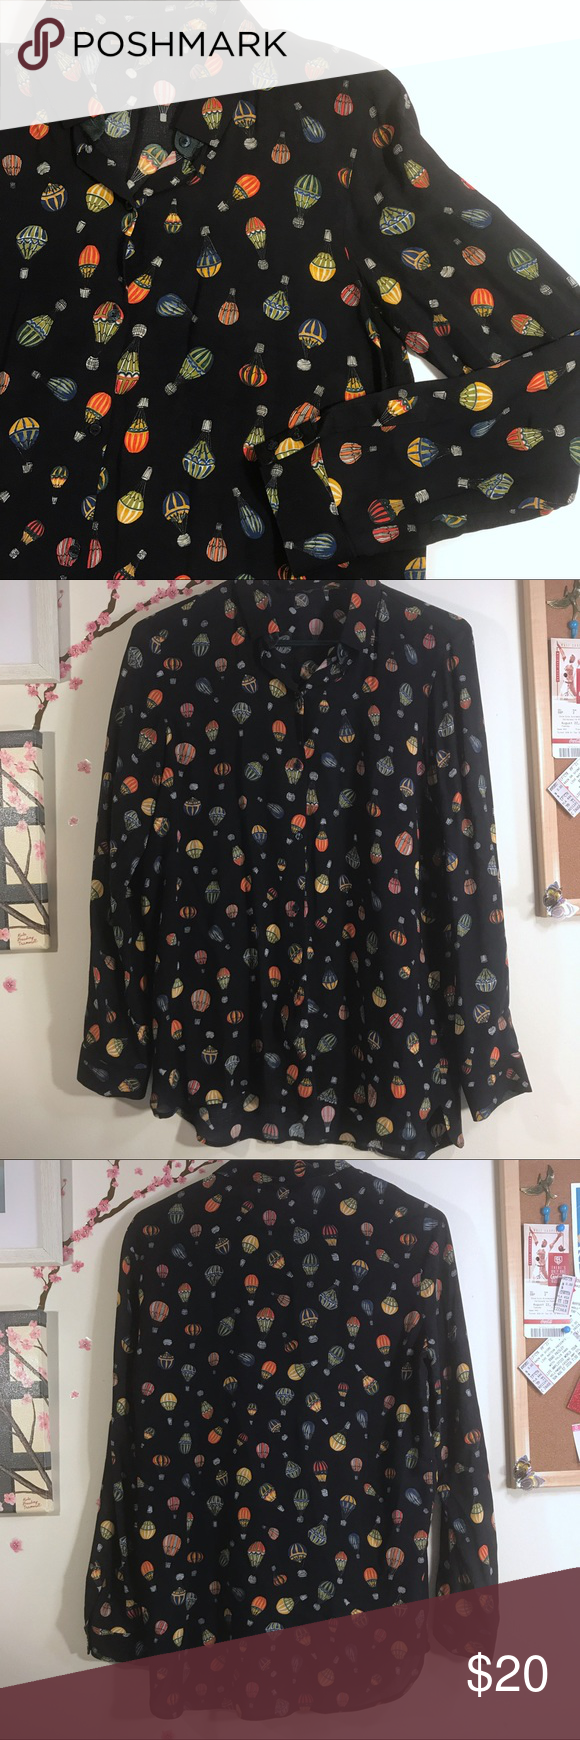 cb7d49ace89635 Zara Basics Hot Air Balloon Print Button Down Size small black background  Zara Basics long sleeve